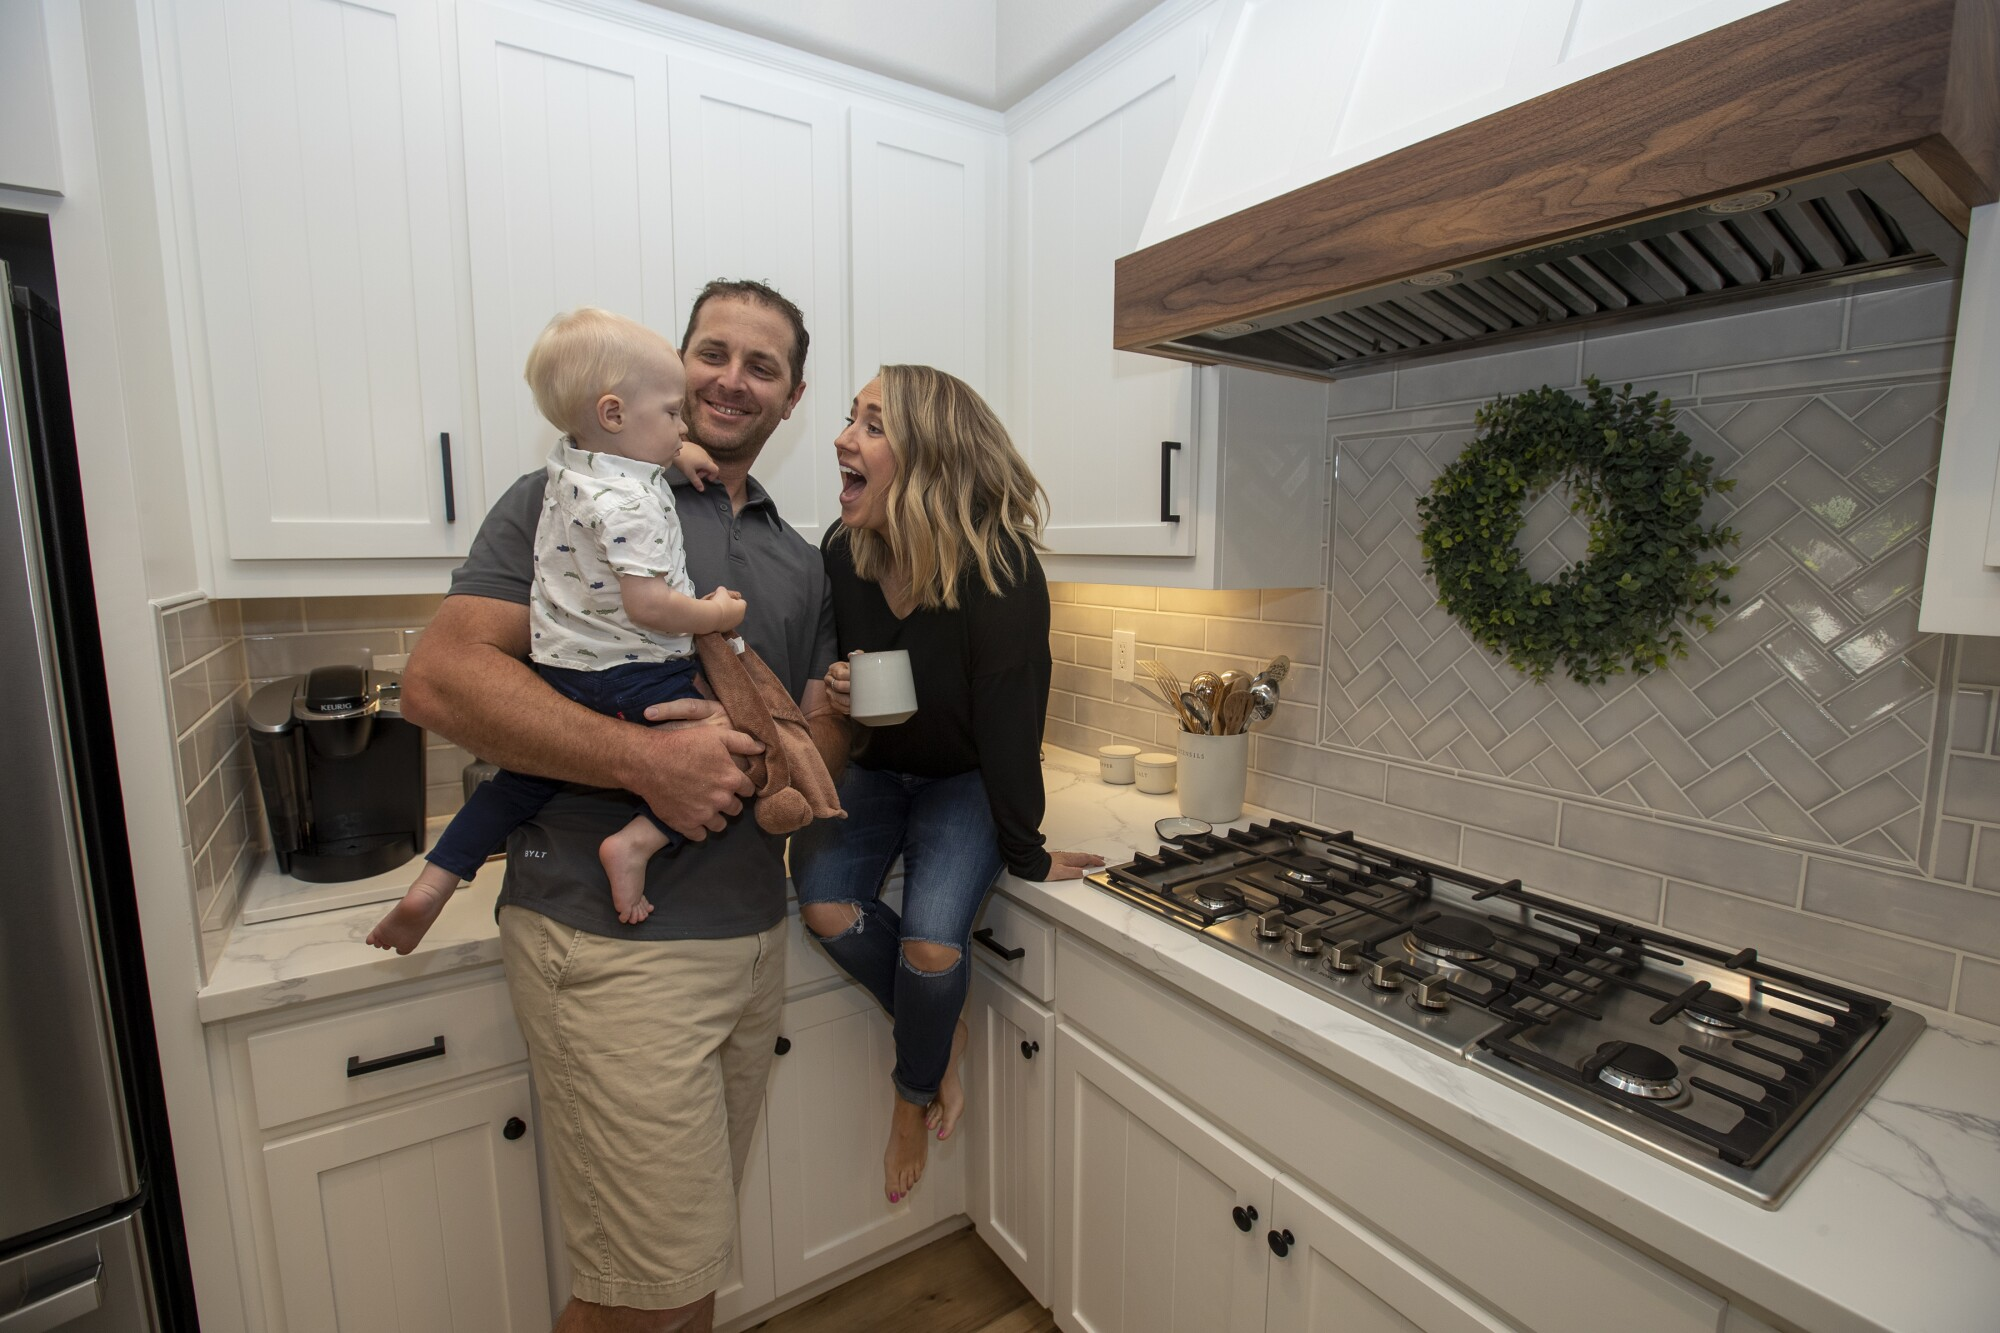 Brian and Rebecca Luke their with son Bennett, 1, in the kitchen of their new home in El Dorado Hills, Calif.